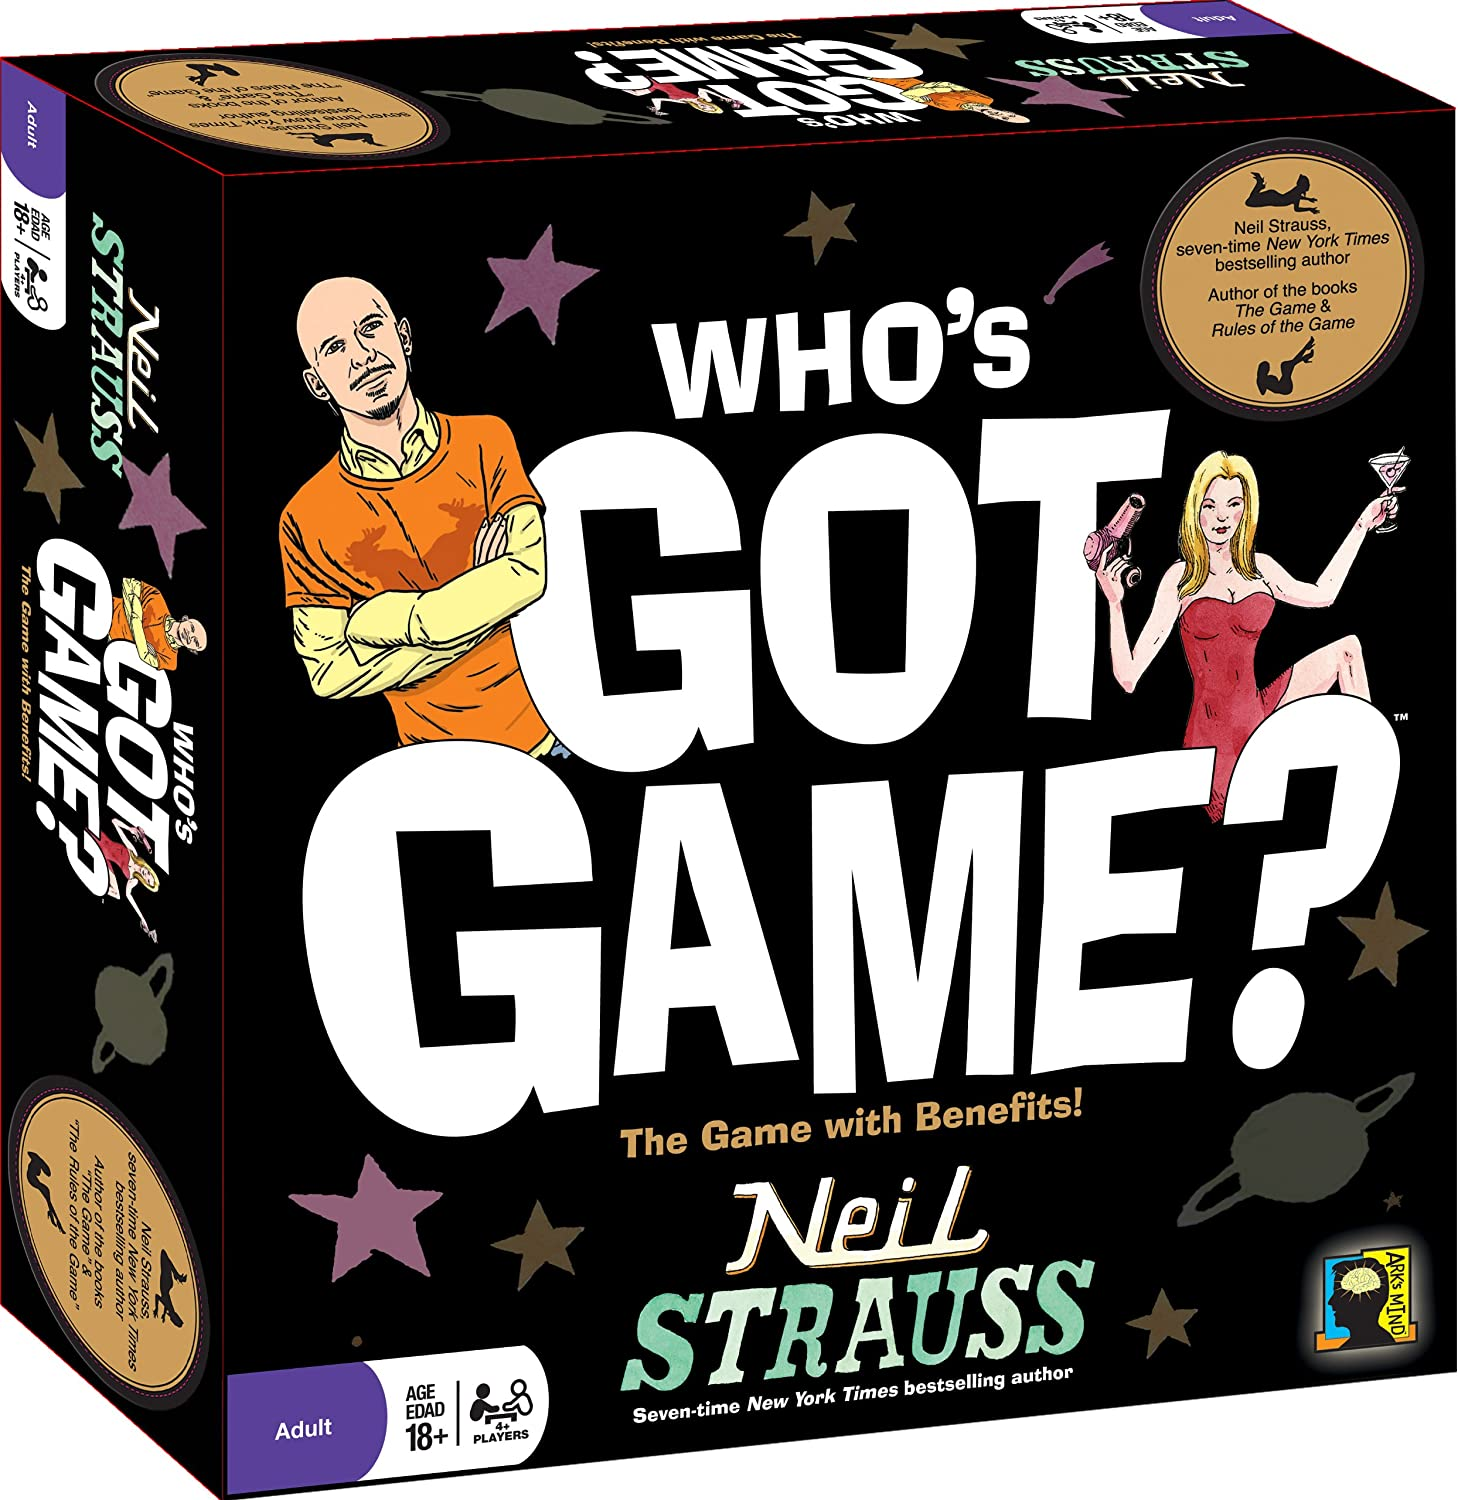 Online copy of the game by neil strauss petit hauts online